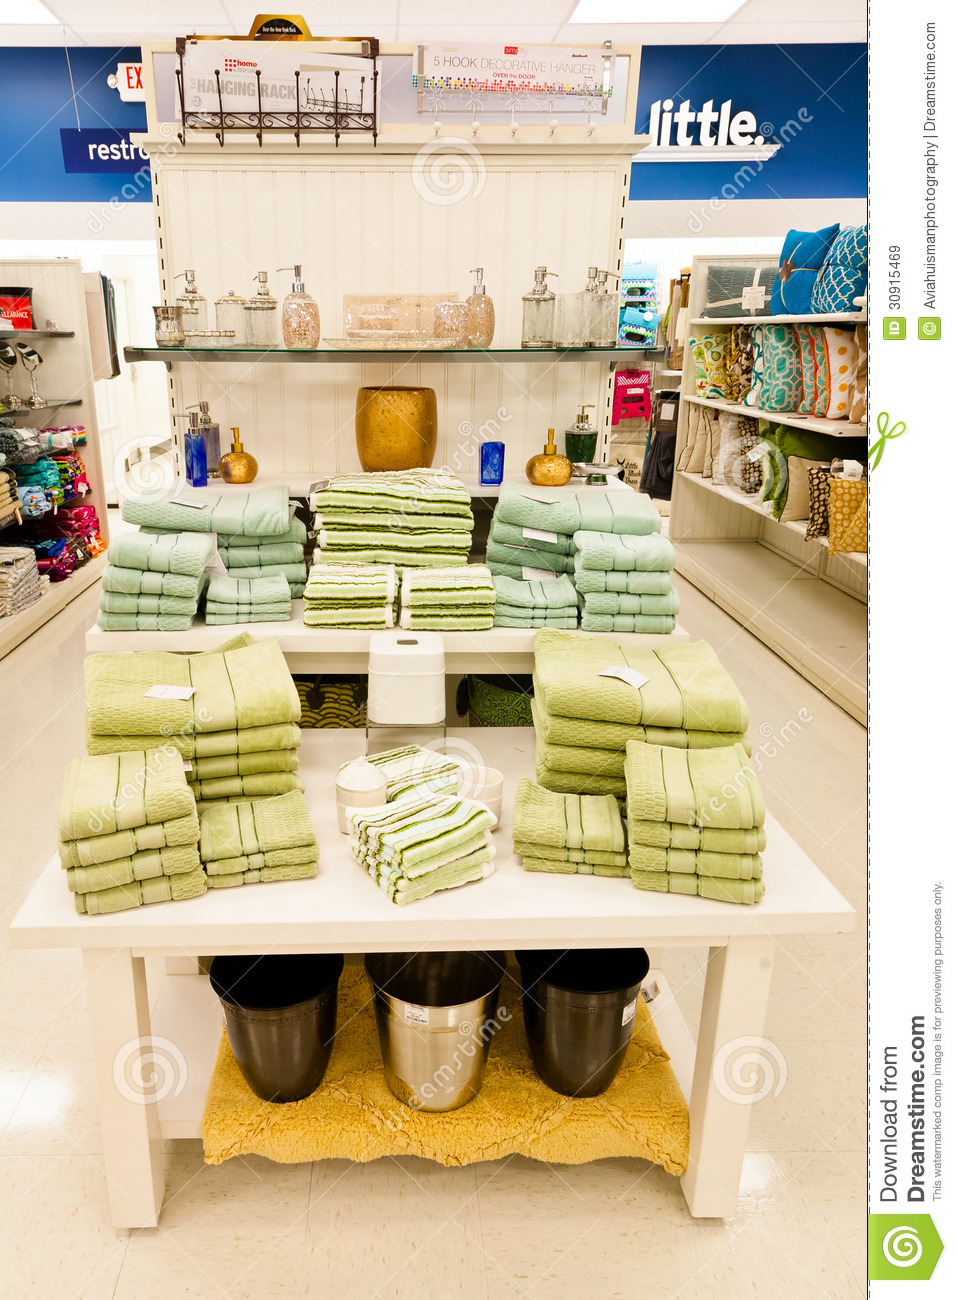 Home goods bathroom decorations editorial stock image for Decoration goods